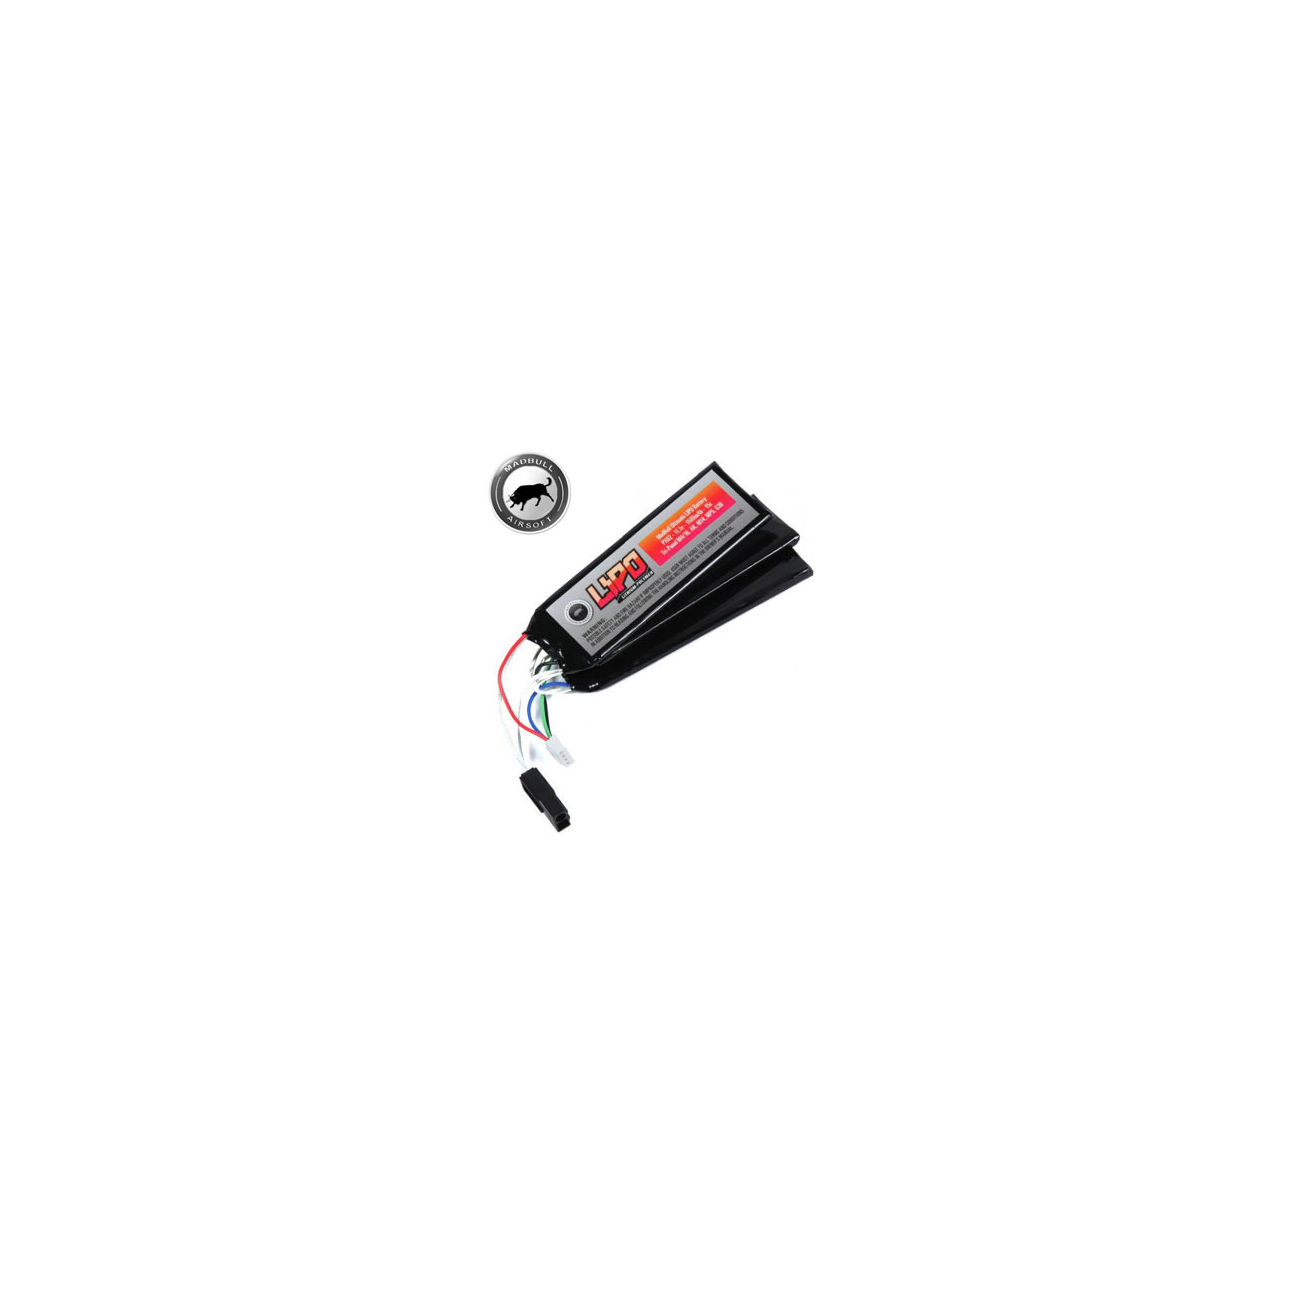 MadBull Ultimate LiPo Akku 11,1V 1500mAh 15C Tri-Panel Version 0